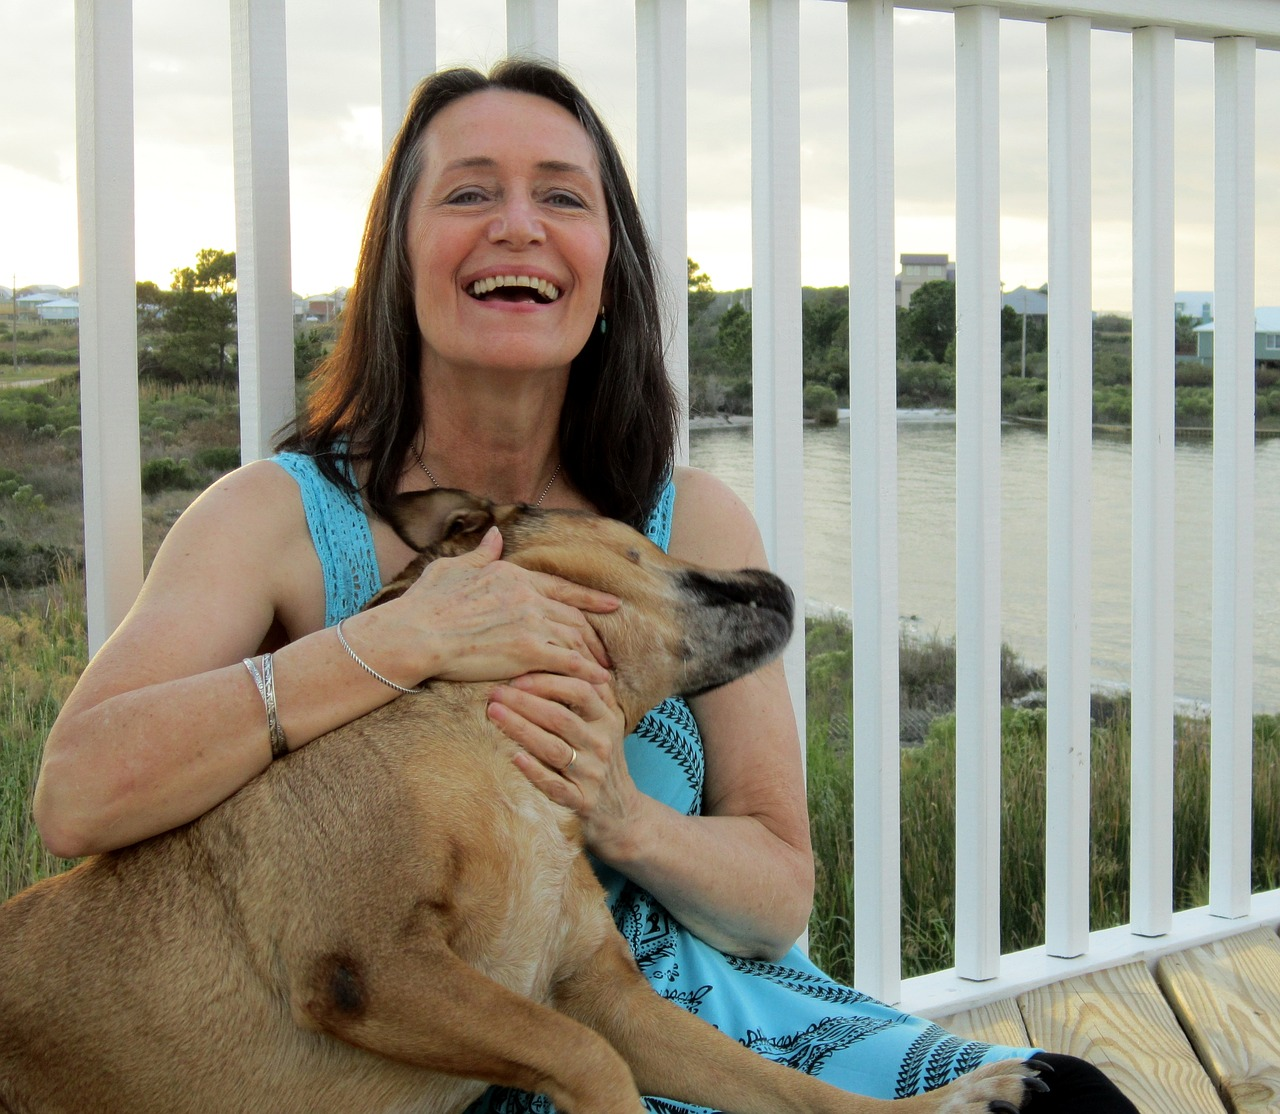 Mature woman sitting and holding a dog, 5 Things You May Not Know About Psoriasis